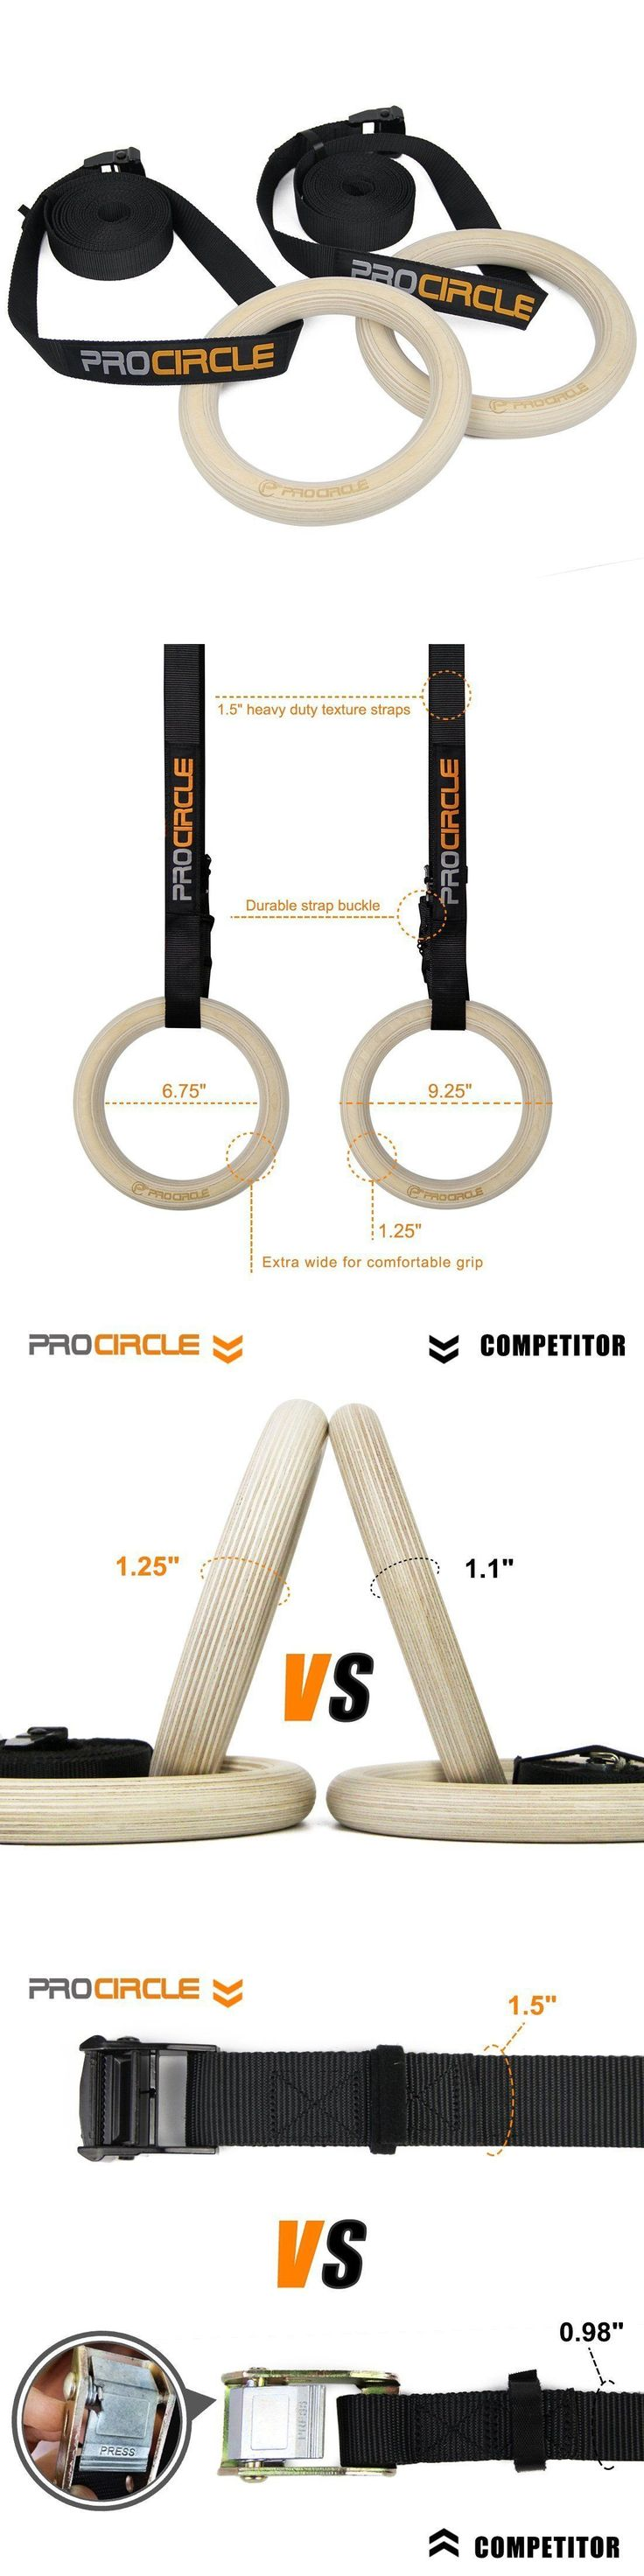 Other Strength Training 28067: Procircle Wooden Gymnastic Rings Olympic Gym Rings W/ Adjustable Straps Crossfit BUY IT NOW ONLY: $38.99